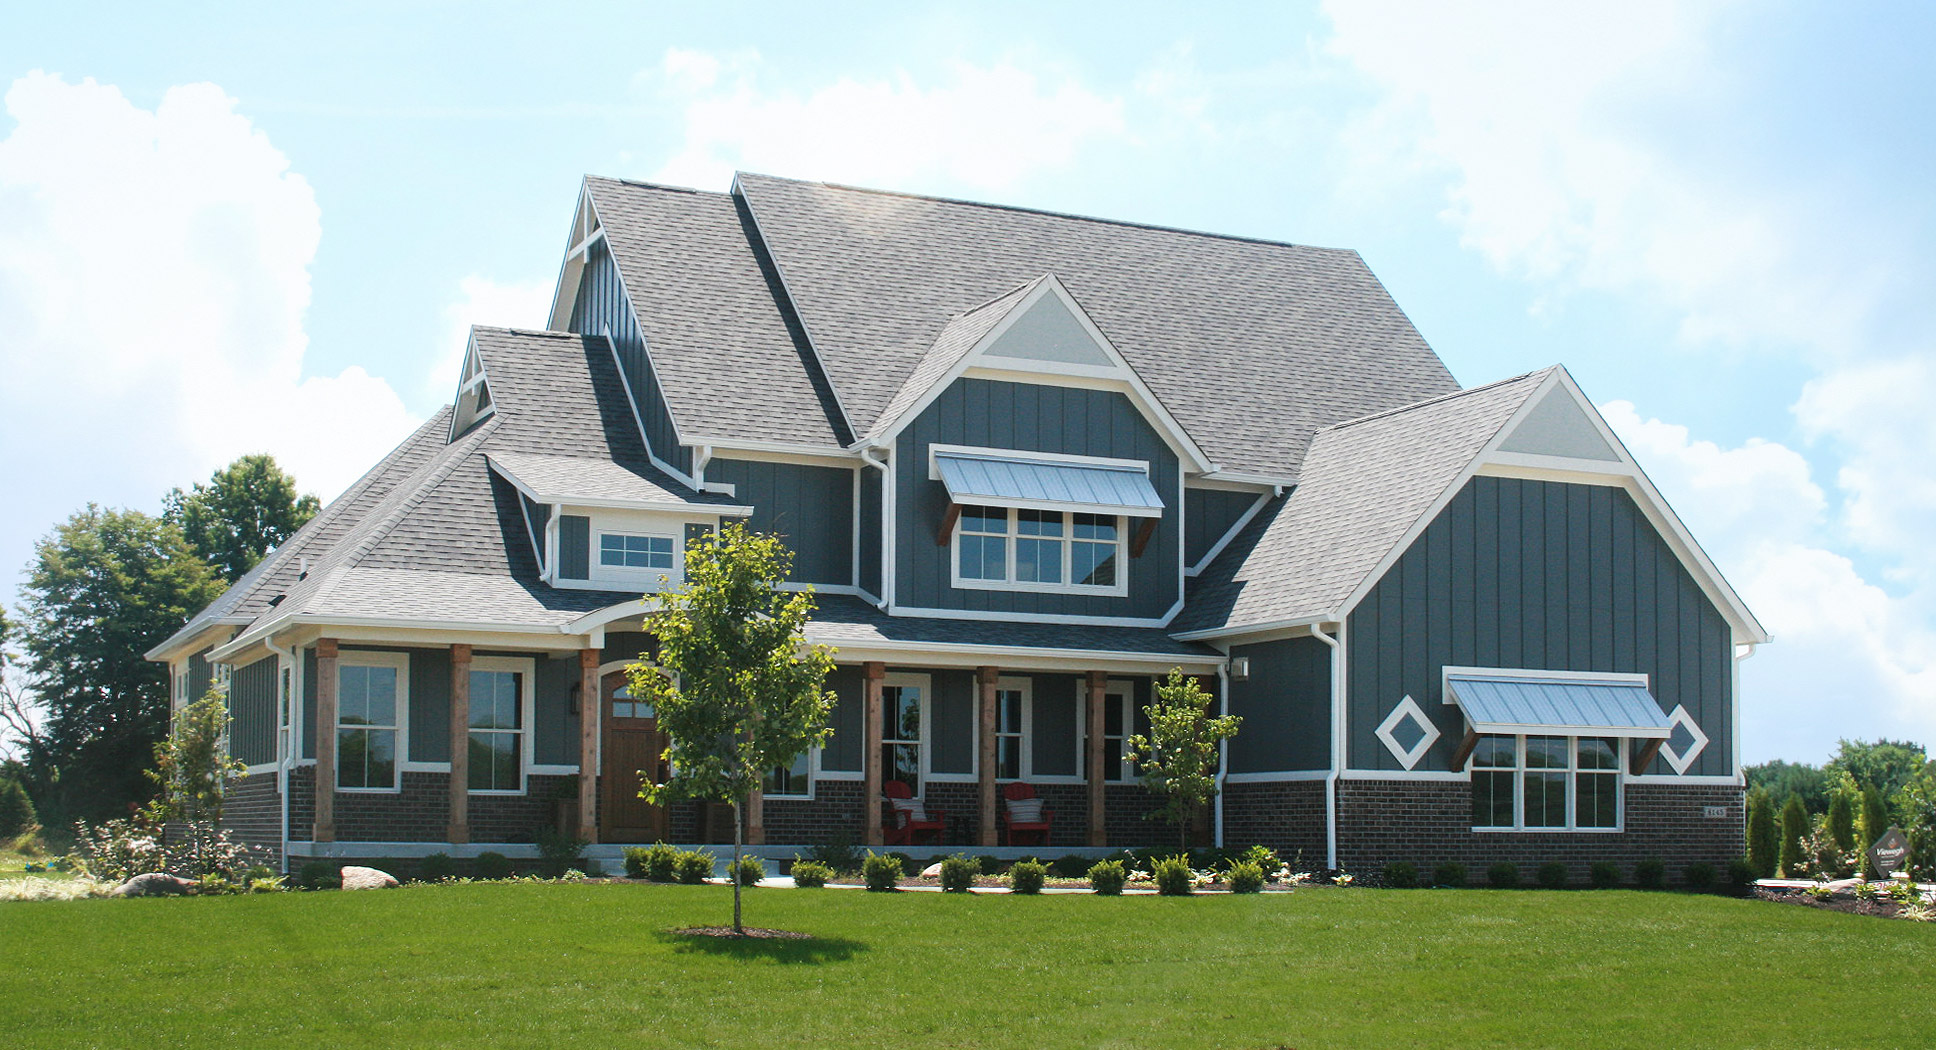 Custom Home Builder Indianapolis, Zionsville, Carmel, Westfield, Fishers, and Noblesville